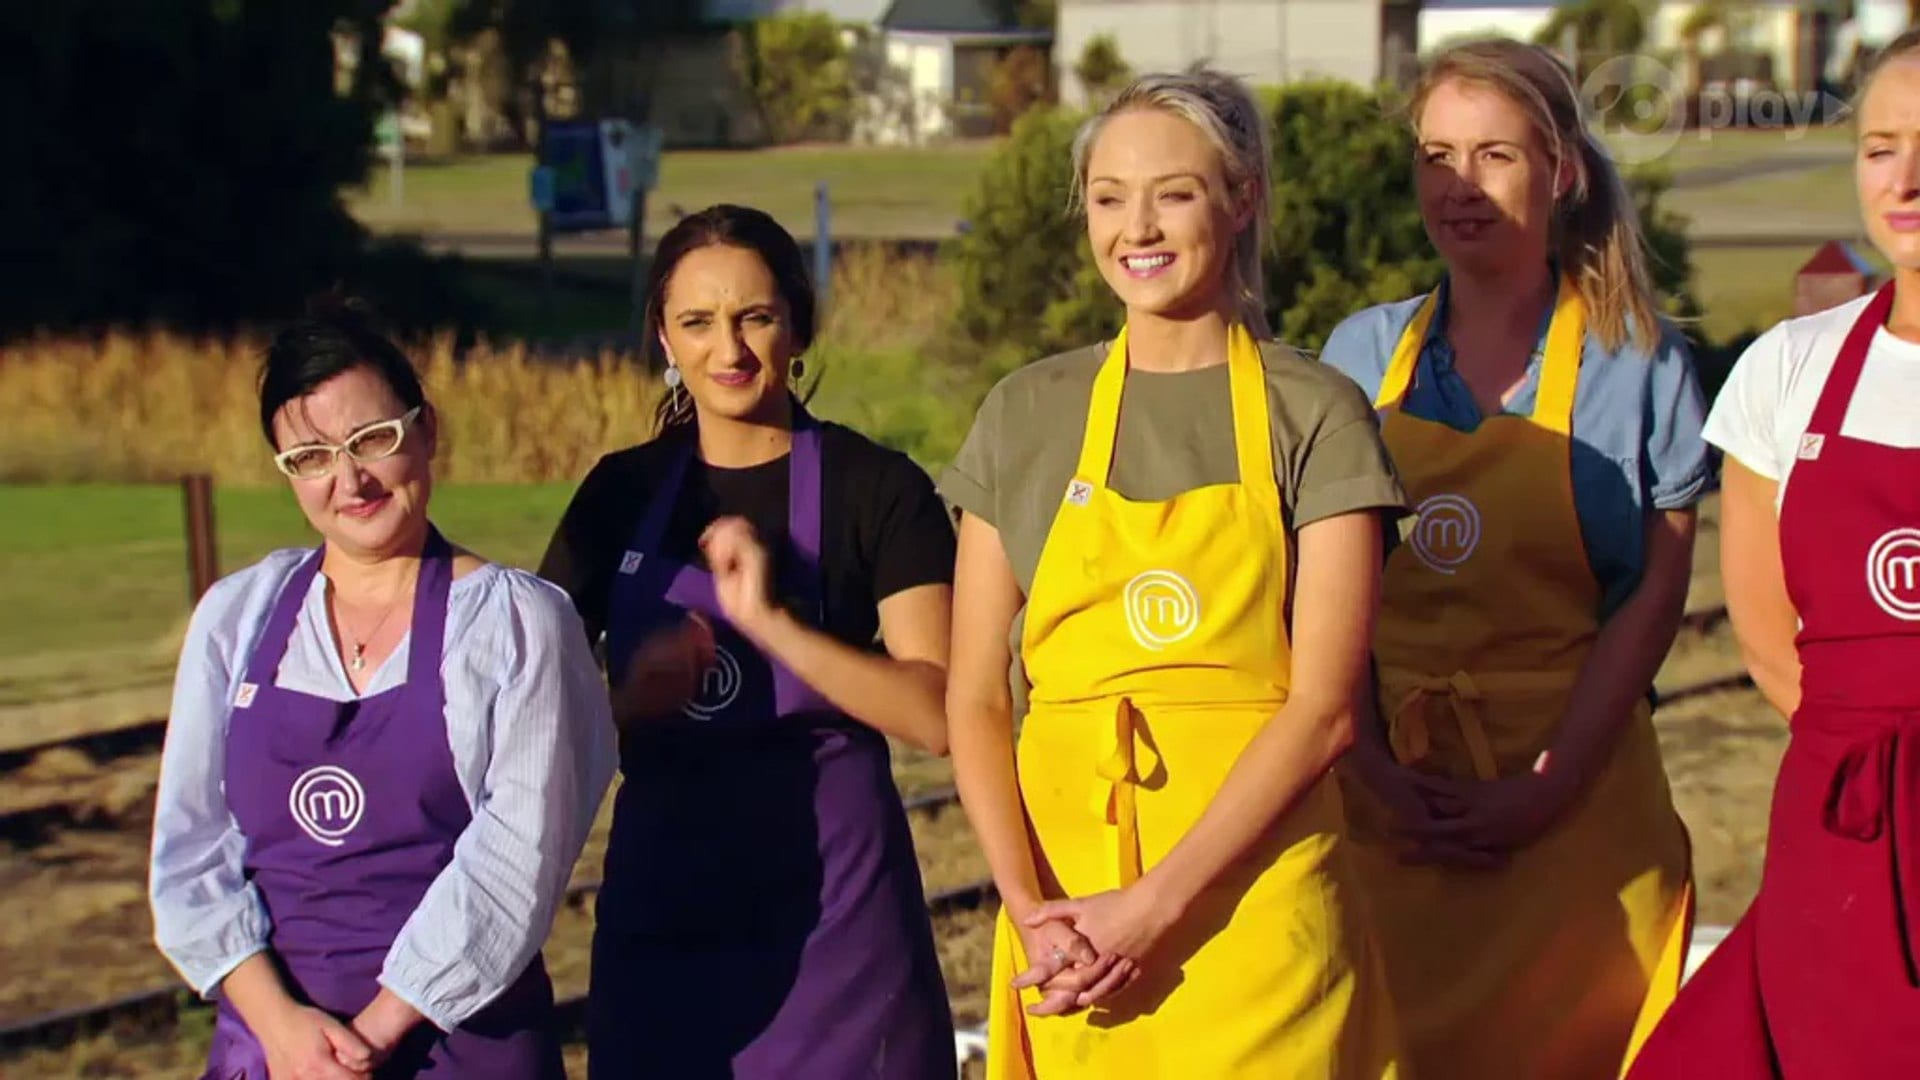 MasterChef Australia Season 11 Episode 49